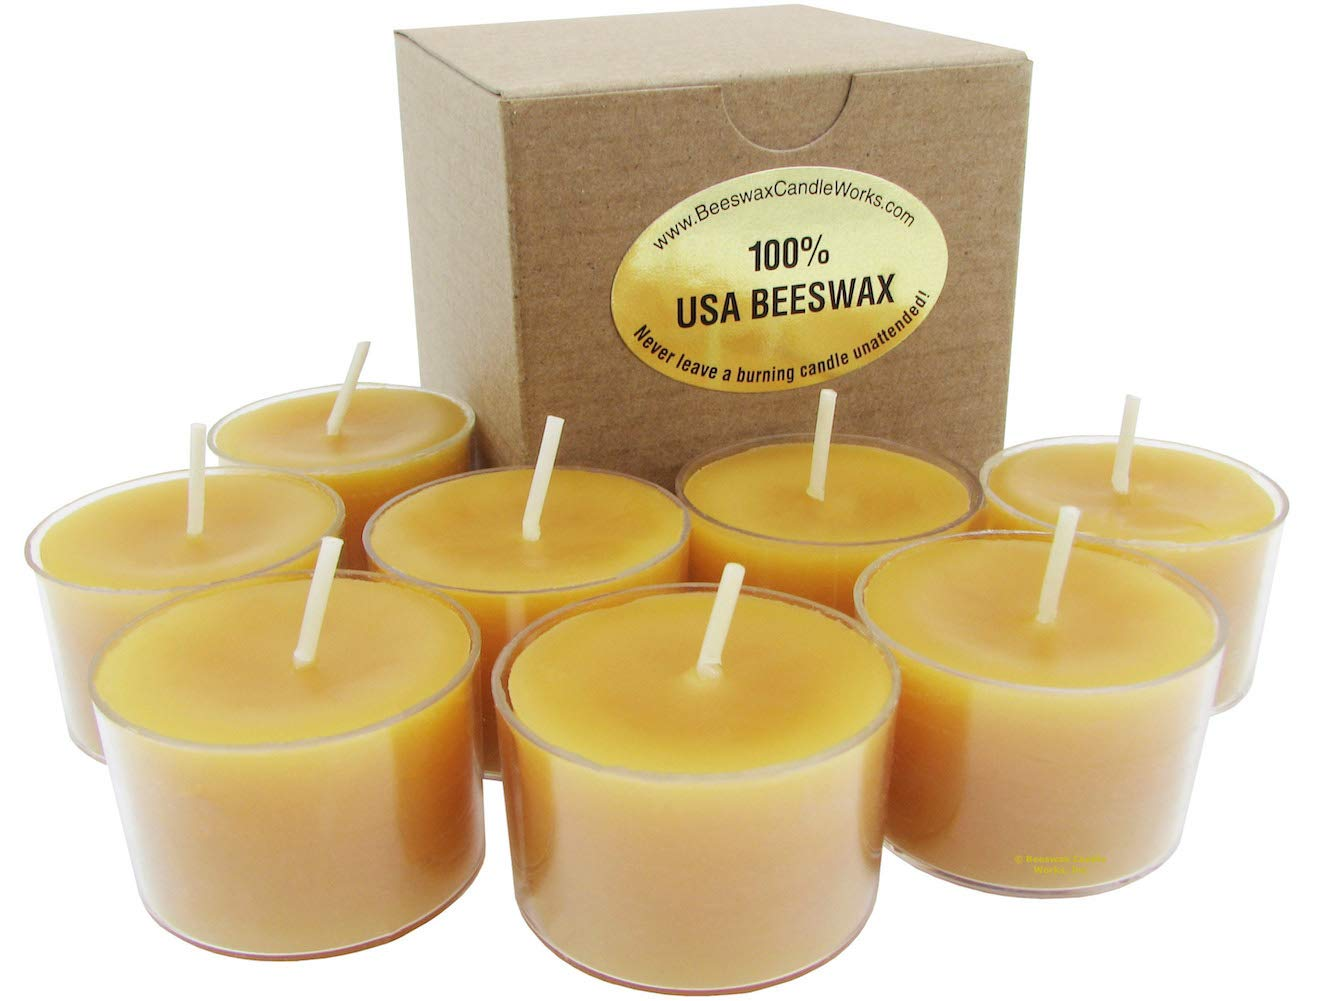 100% USA Beeswax 8 Hour Tall TeaLight Candles (Box of 32)